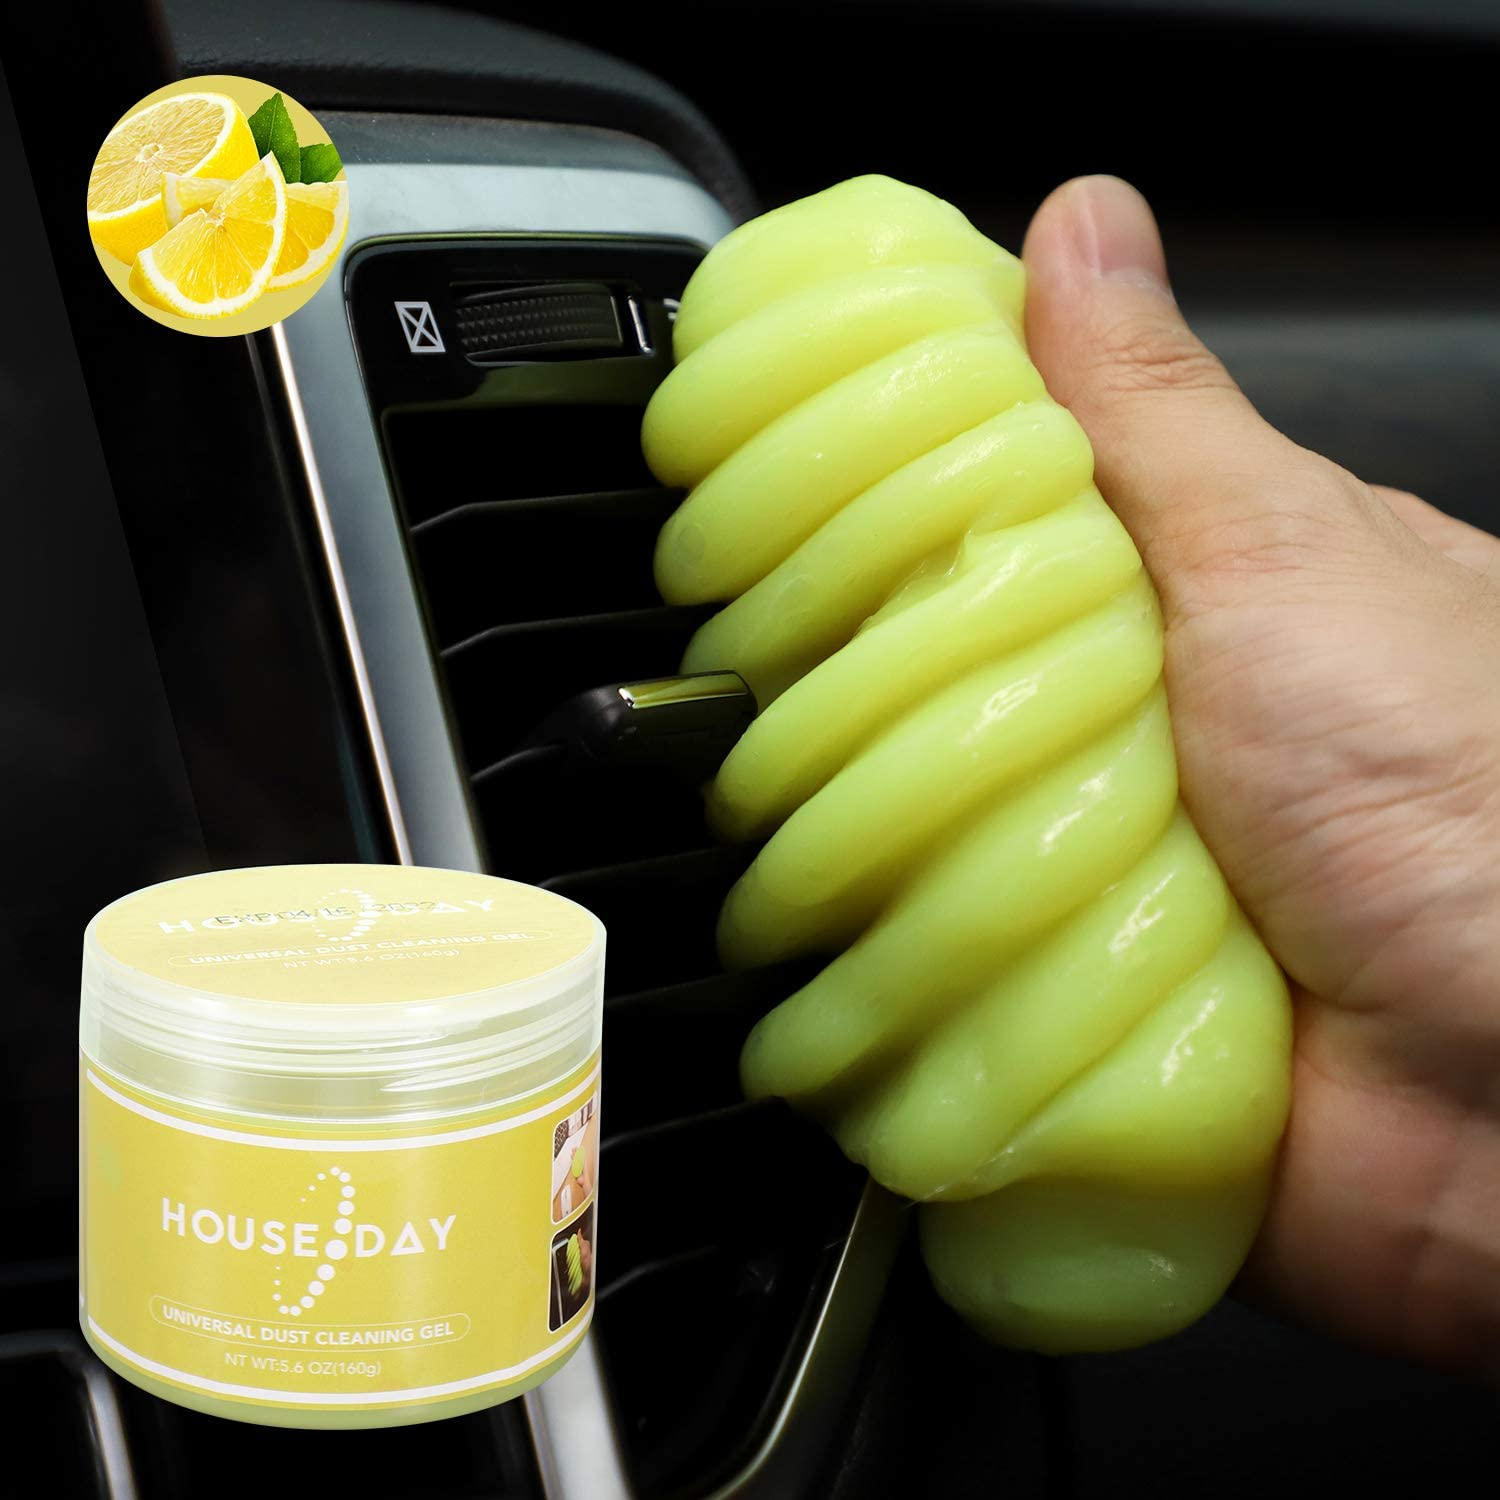 Cleaning Gel for Car Detailing Putty Auto Cleaning Putty Auto Detailing Gel Detail Tools Car Interior Cleaner Universal Dust Removal Gel Vent Cleaner Keyboard Cleaner for Laptop,Car Vents (1pc Yellow)